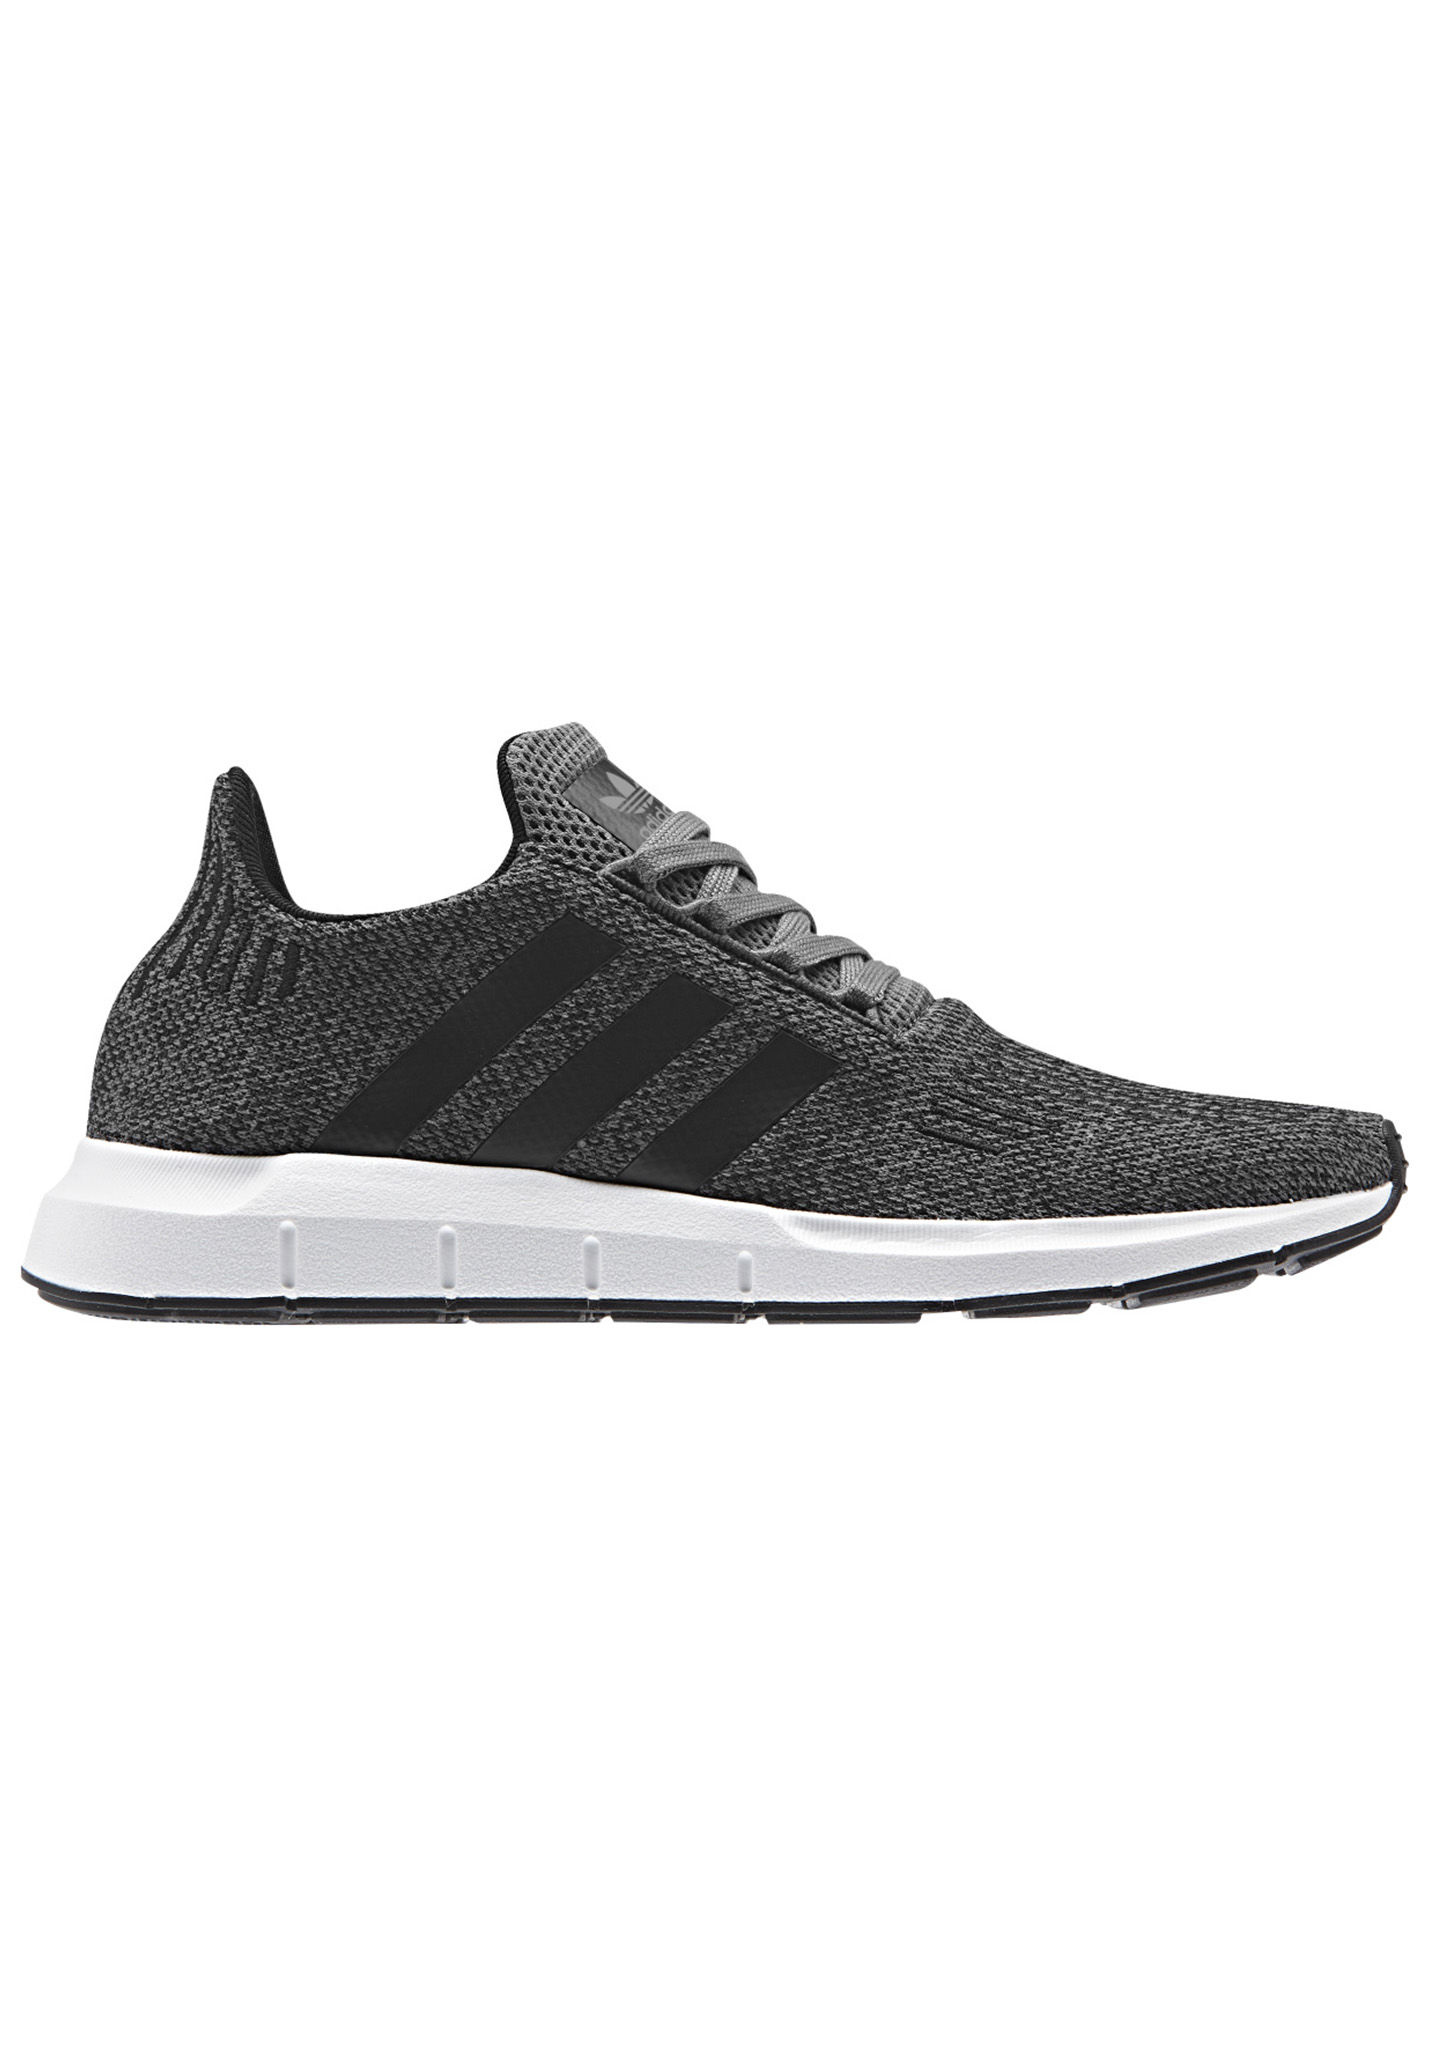 9908f0c8a ADIDAS ORIGINALS Swift Run - Sneakers for Men - Grey - Planet Sports